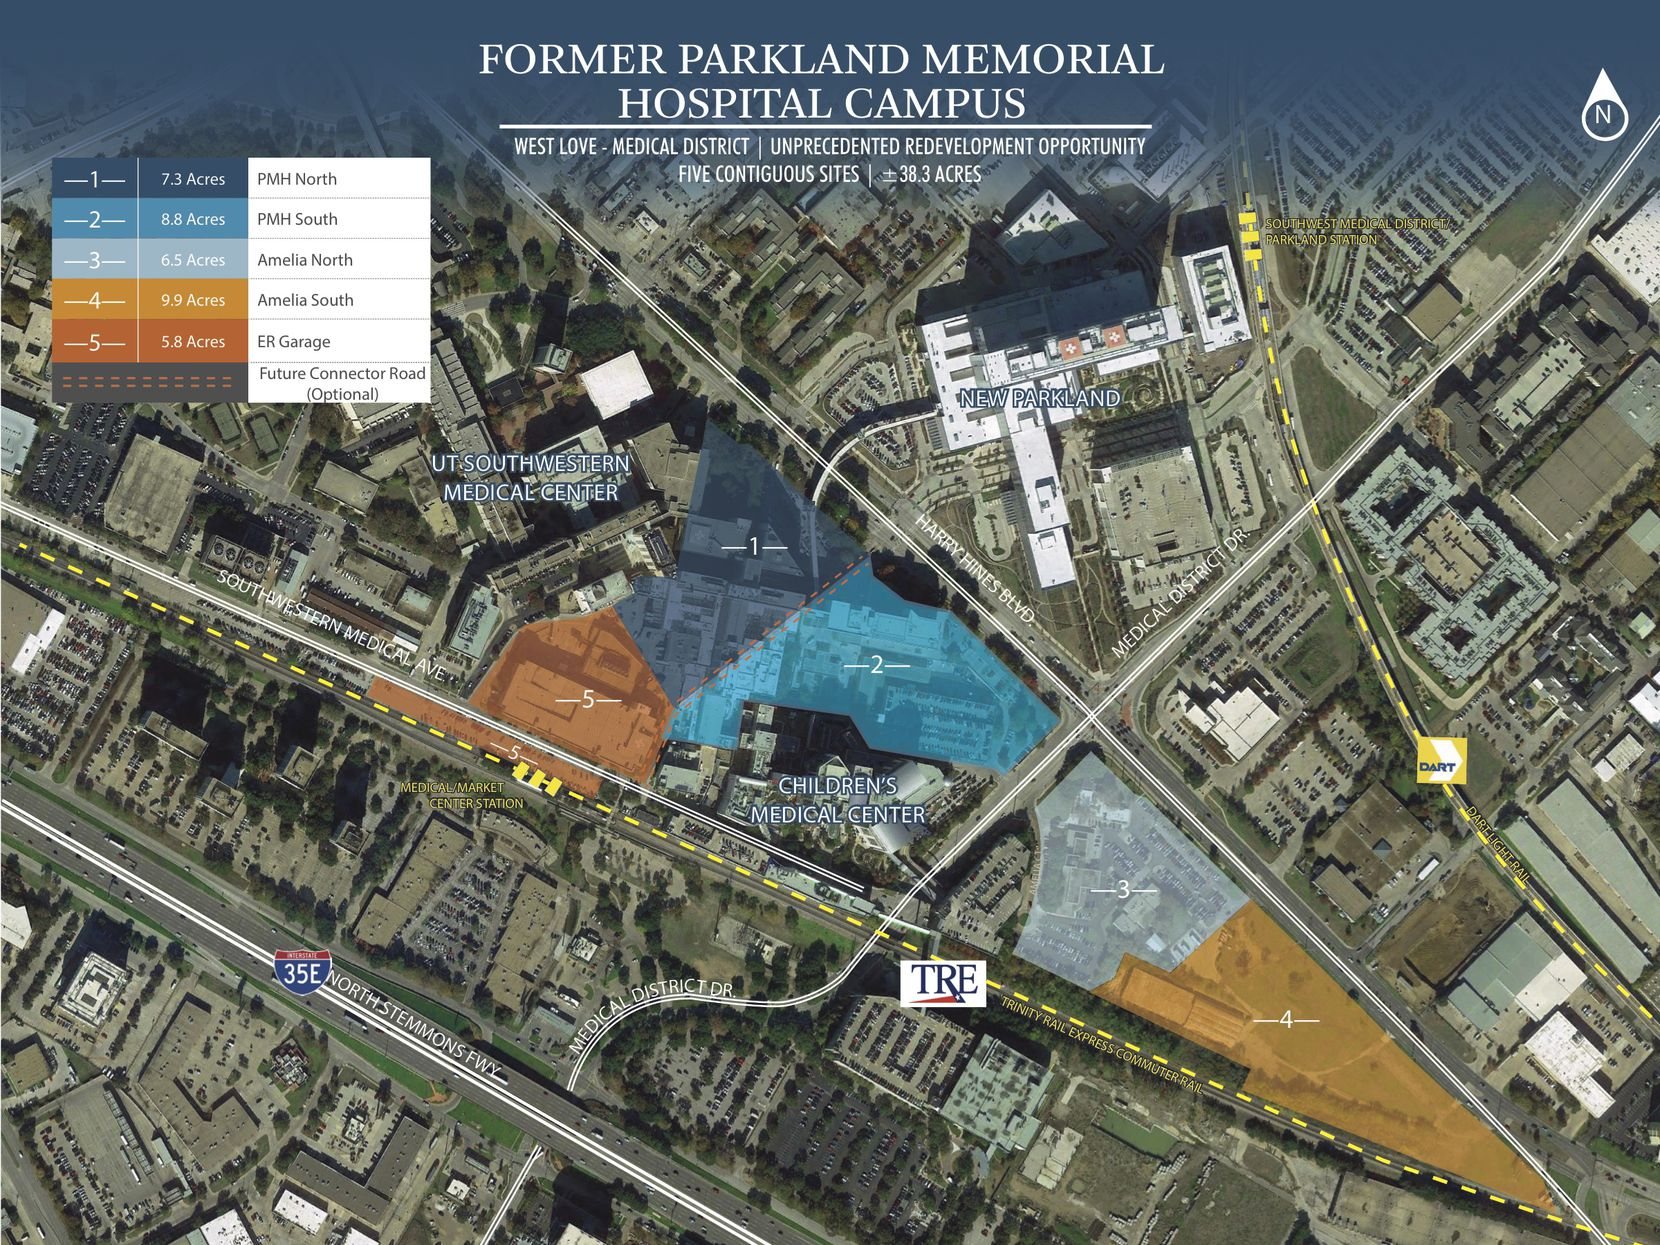 The Parkland Hospital properties up for sale include more than 1 million square feet of buildings on 38 acres.